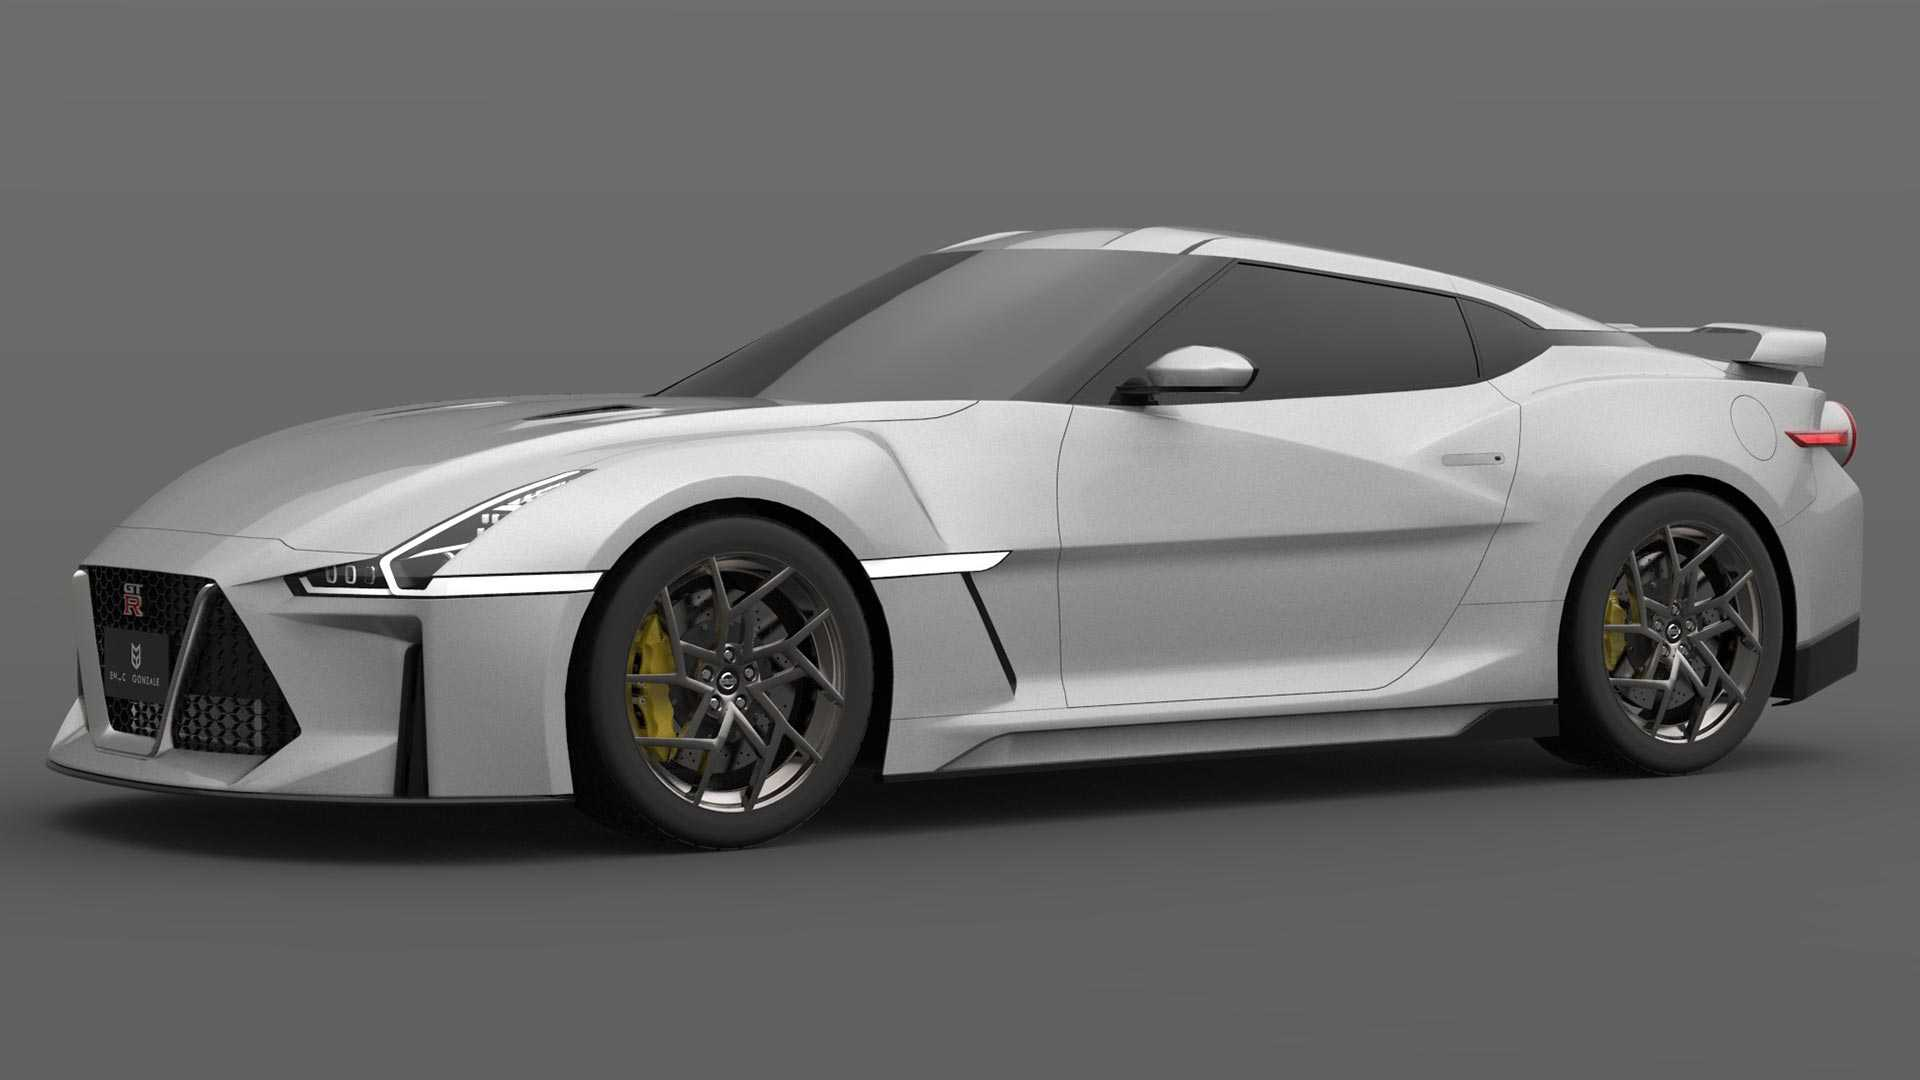 61 The Best 2020 Nissan GT R Concept And Review